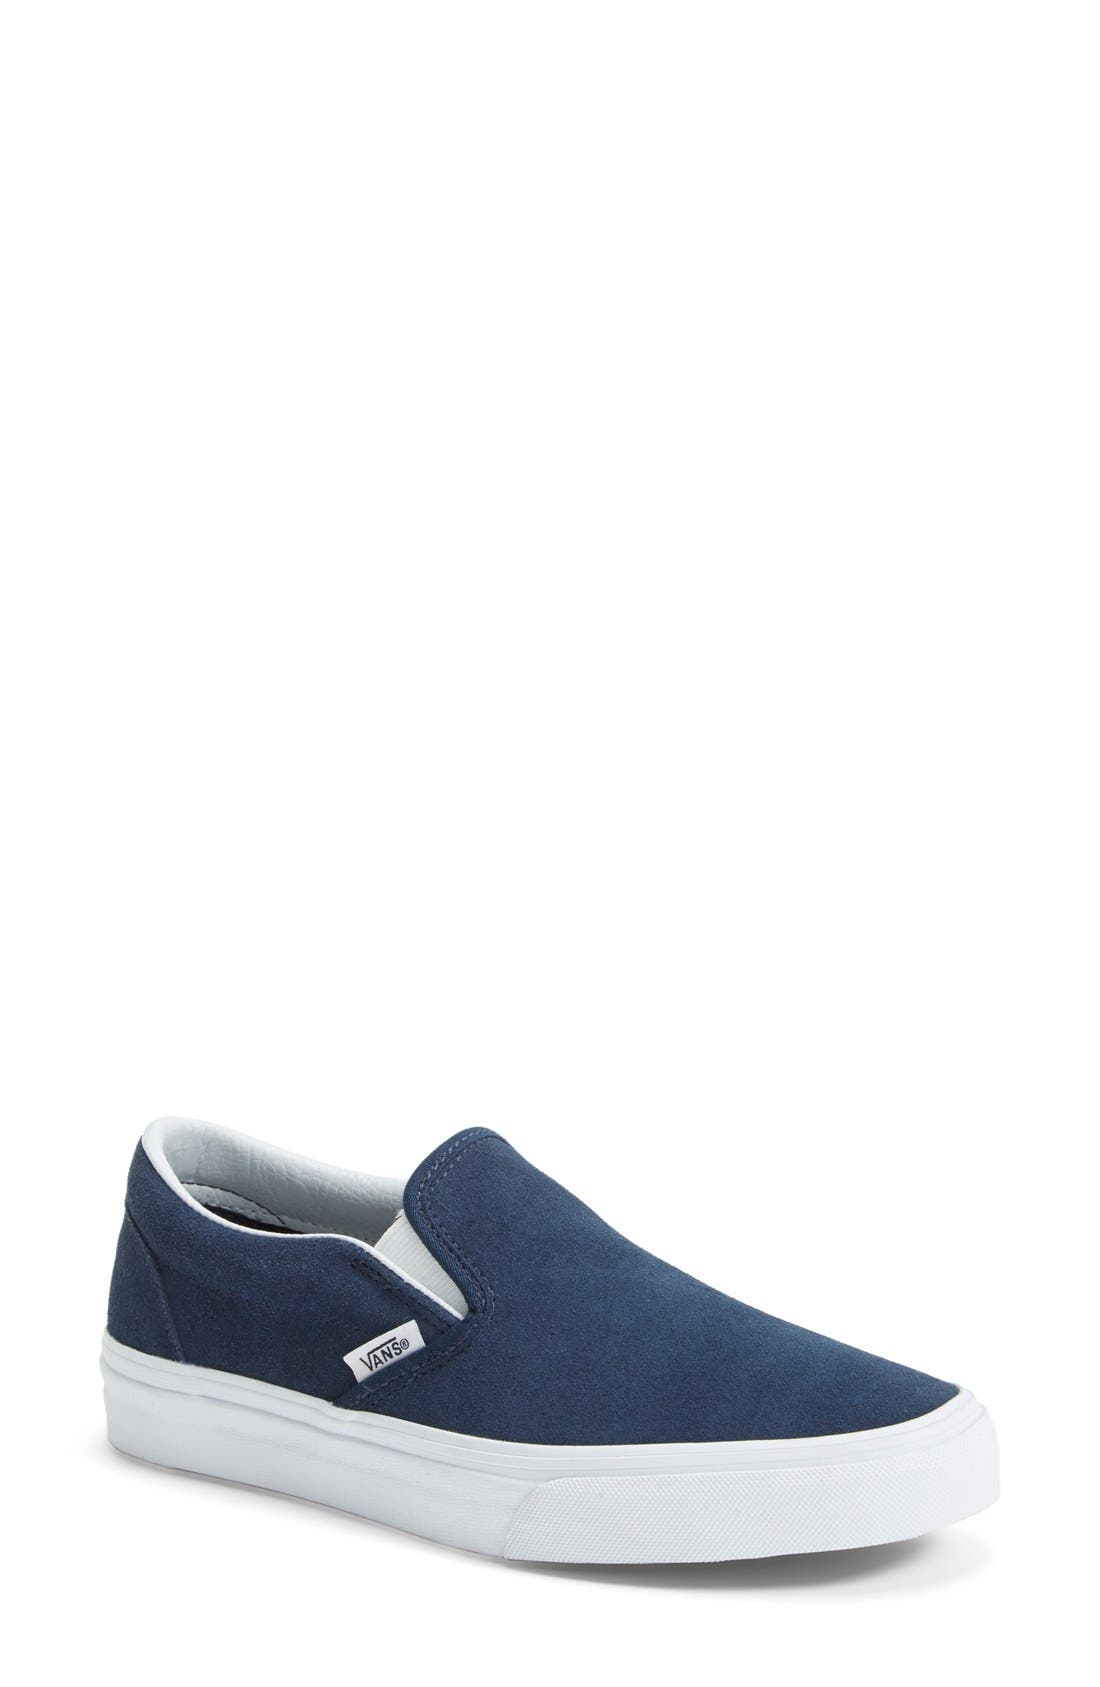 Alternate Image 1 Selected - Vans Suede Slip-On Sneaker (Women)